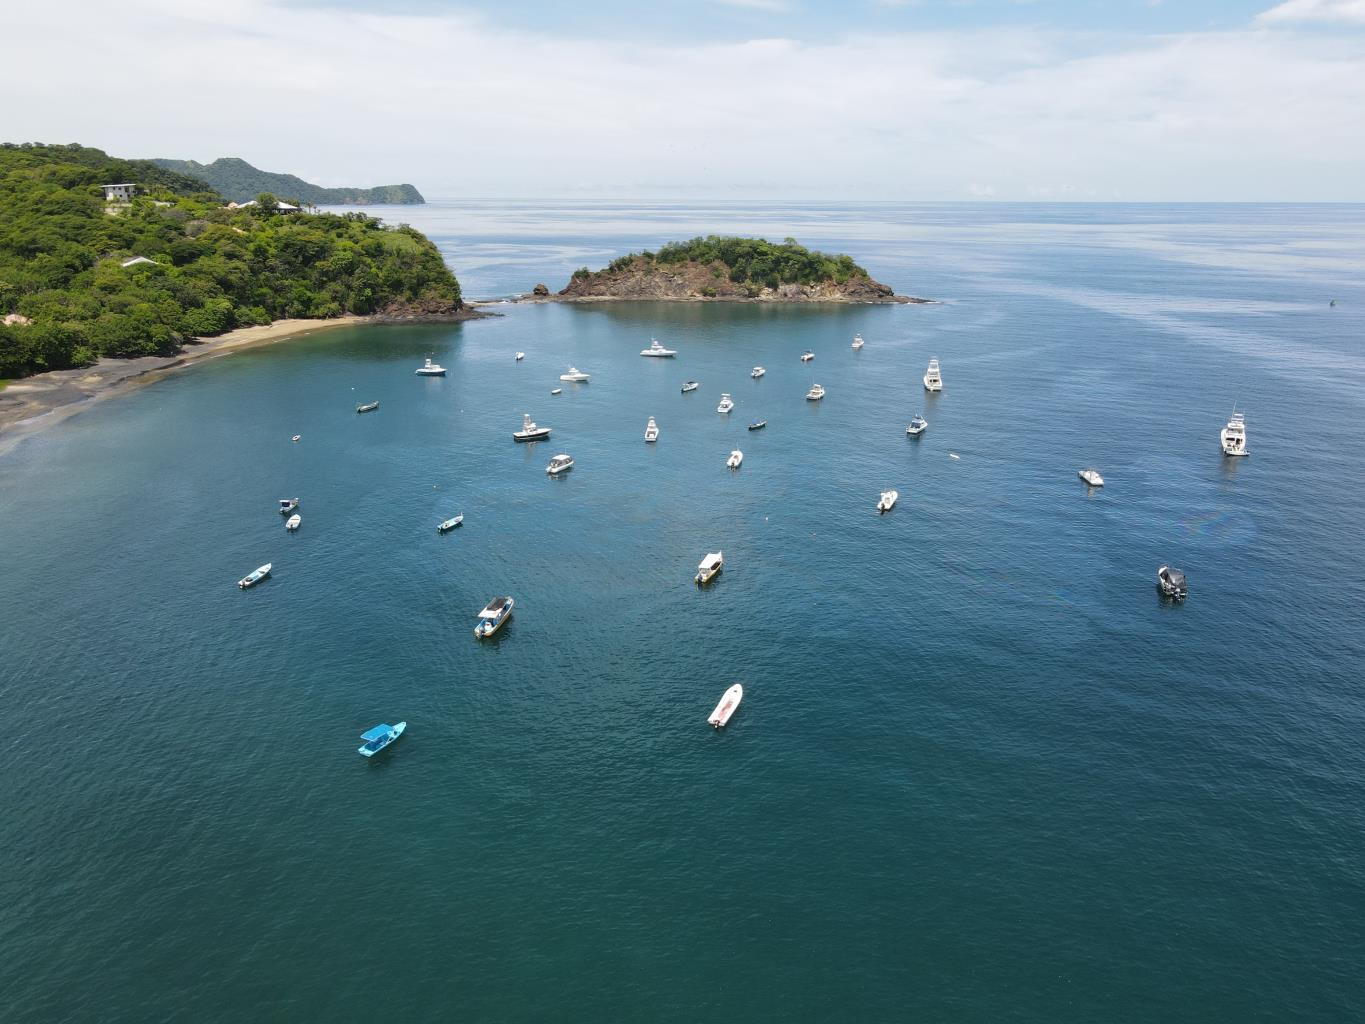 Boats nestled in the bay off of Playa Ocotal